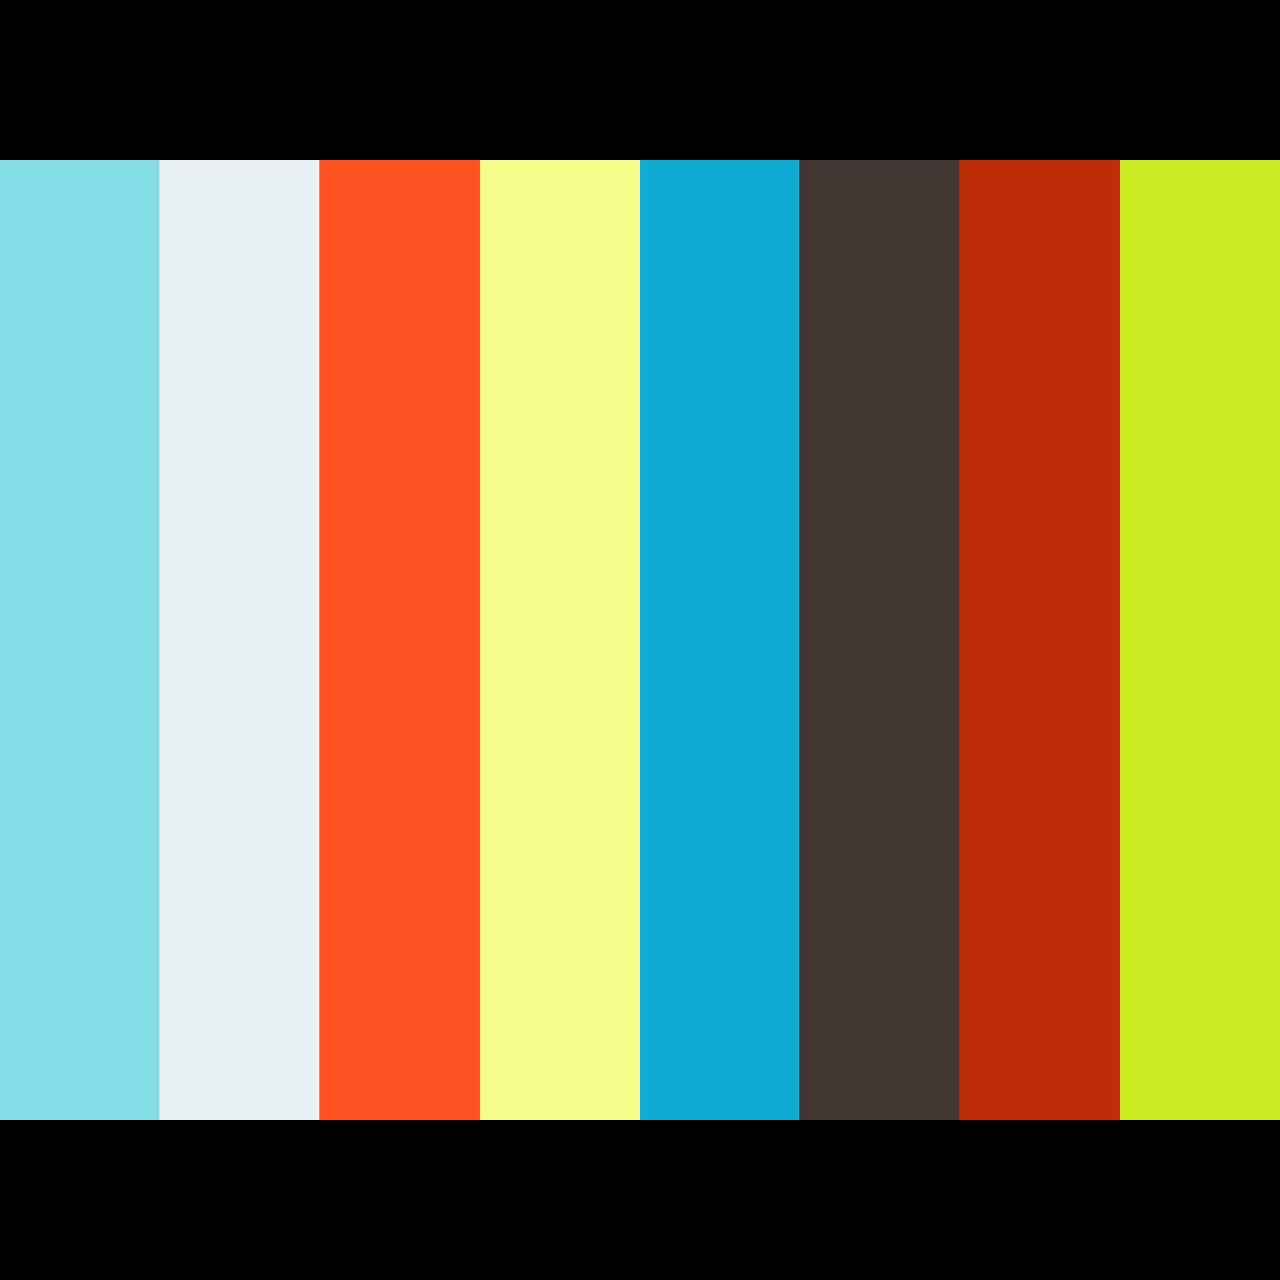 Canon C300 MKII - Building A Shoulder Rig to Streamline Your Filmmaking